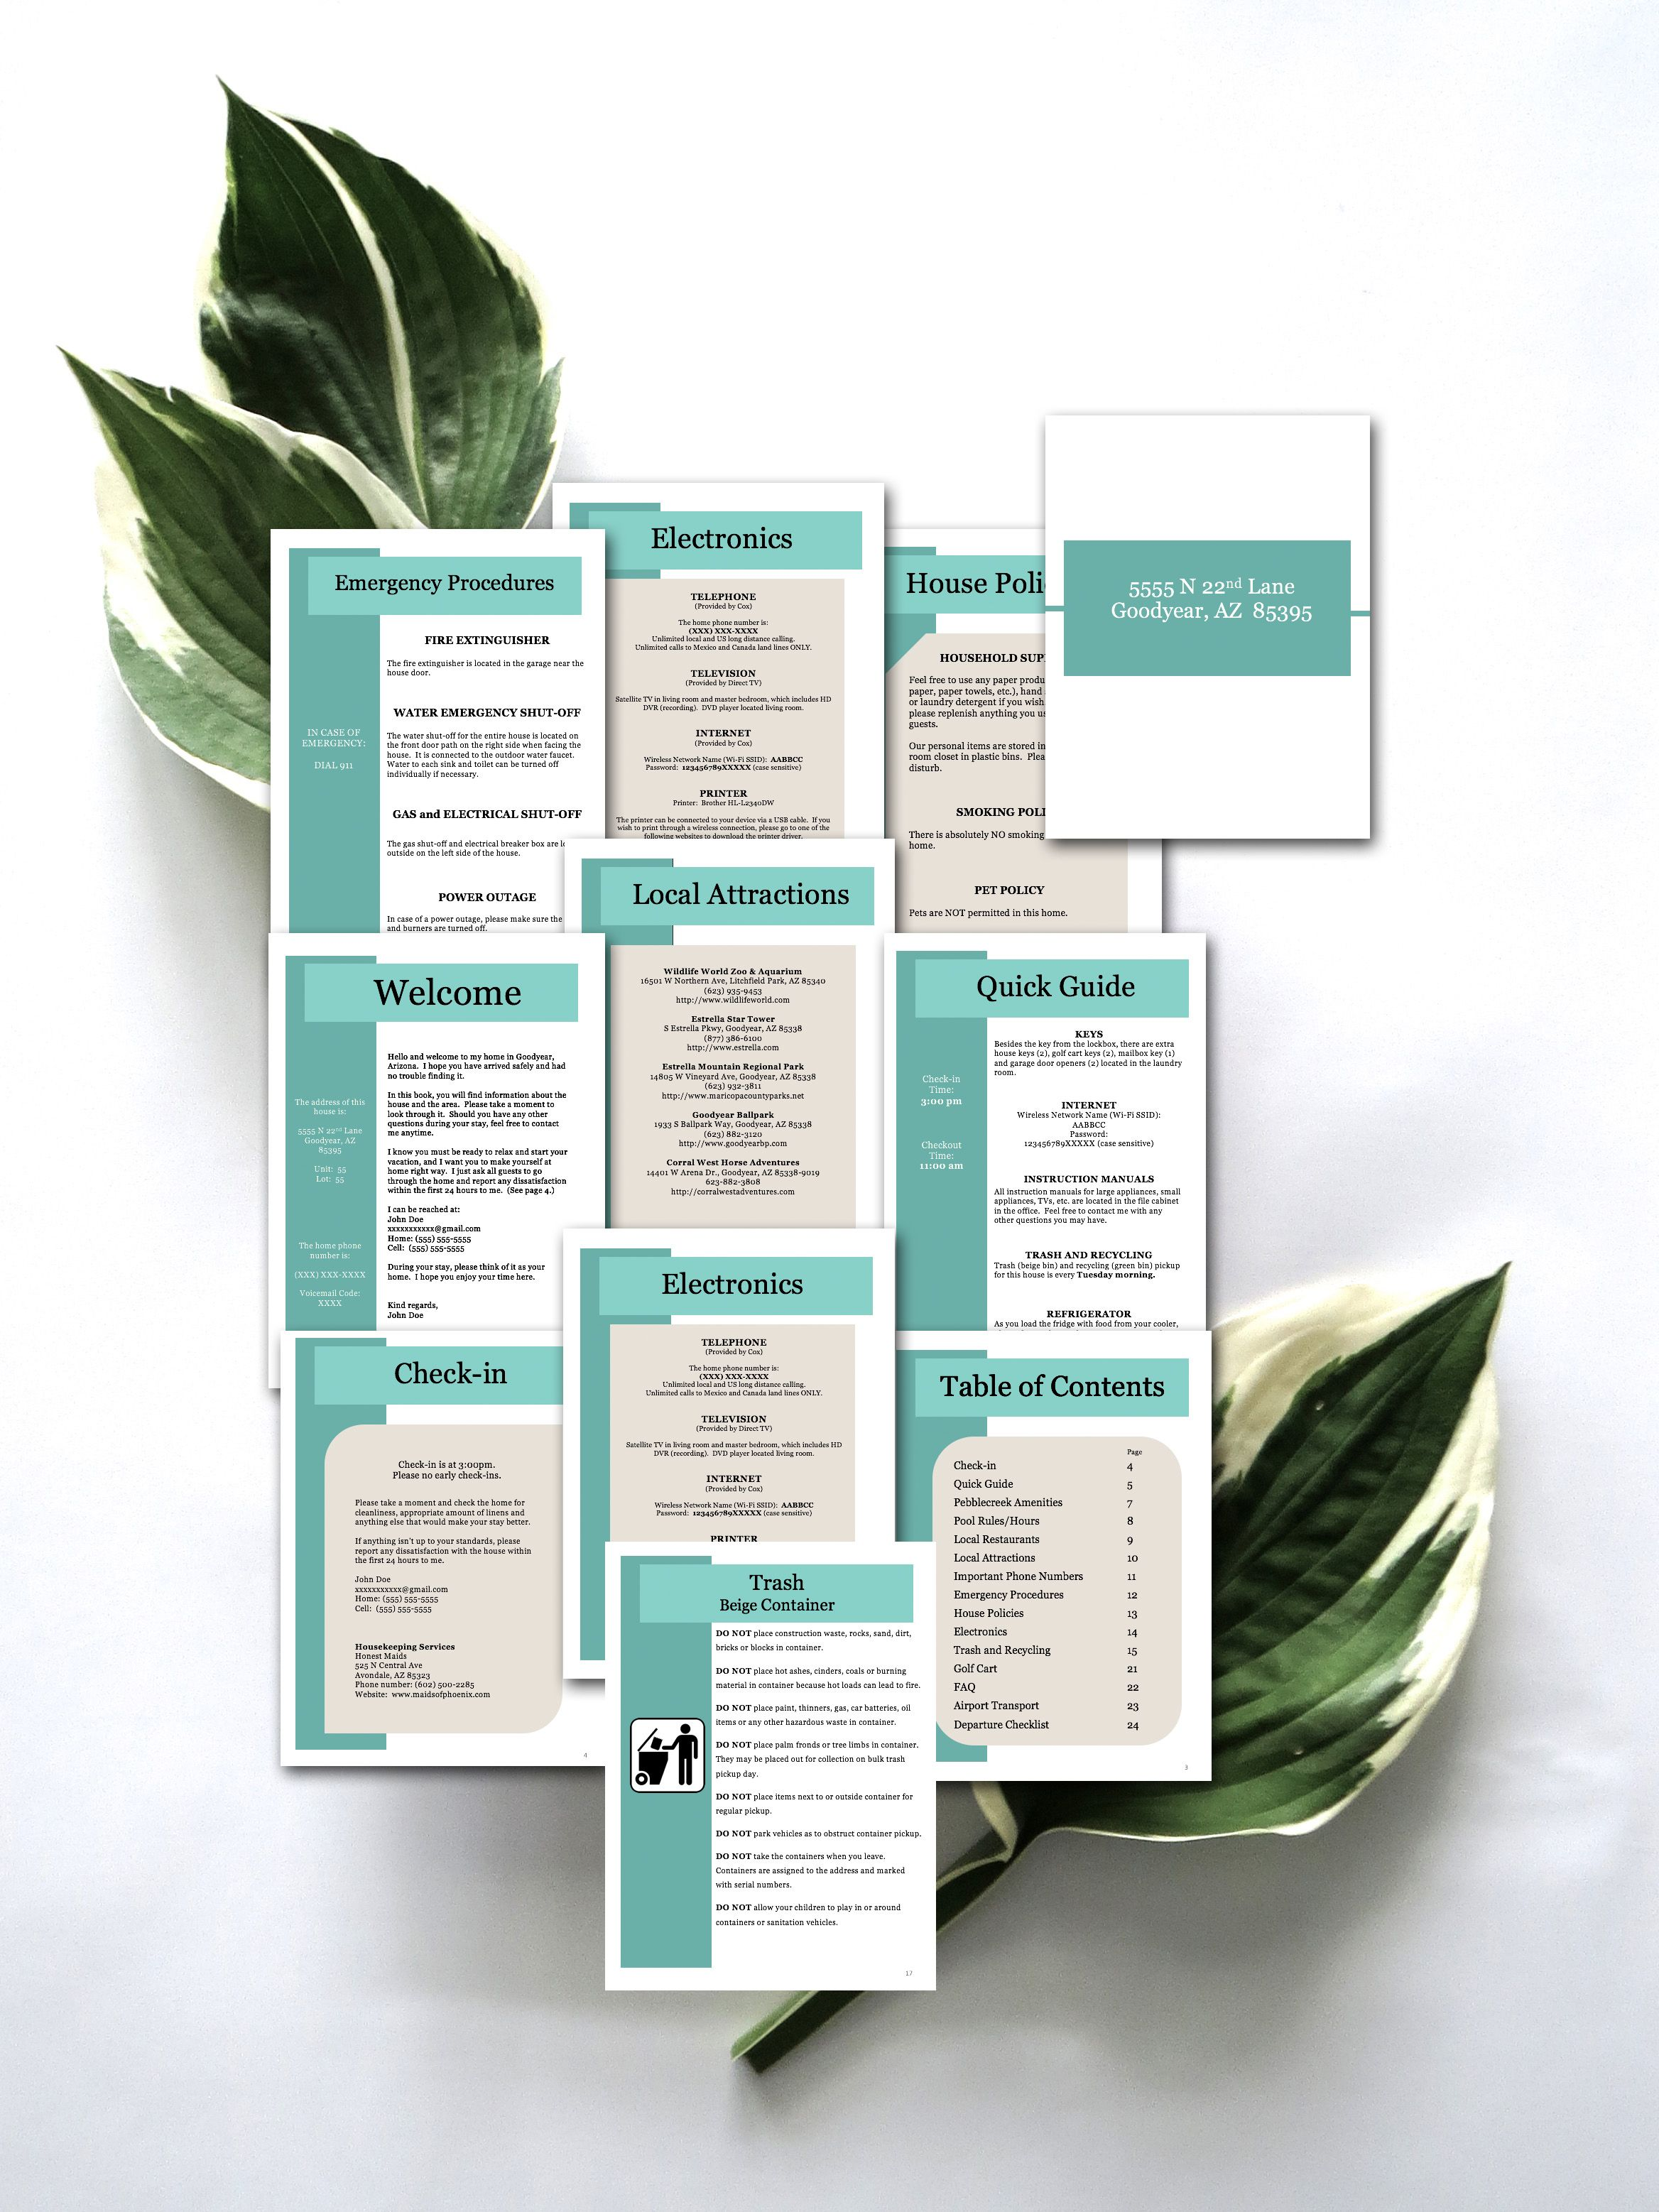 Ultimate Vacation Rental Welcome Book Template 20 Pages Etsy Airbnb House Vacation Rental Rental